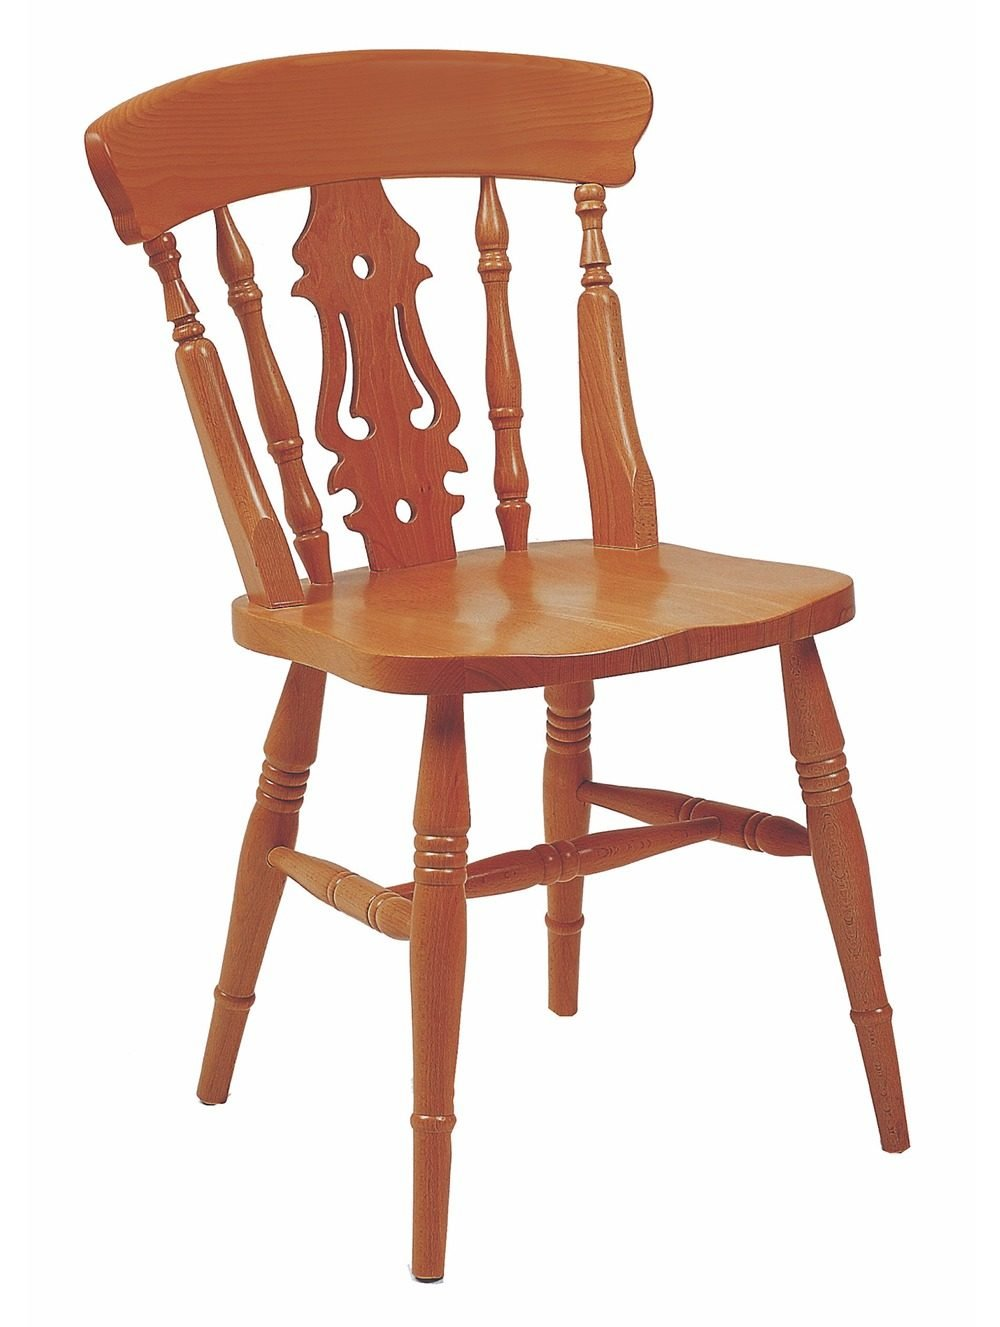 Farmhouse Fiddleback Chair